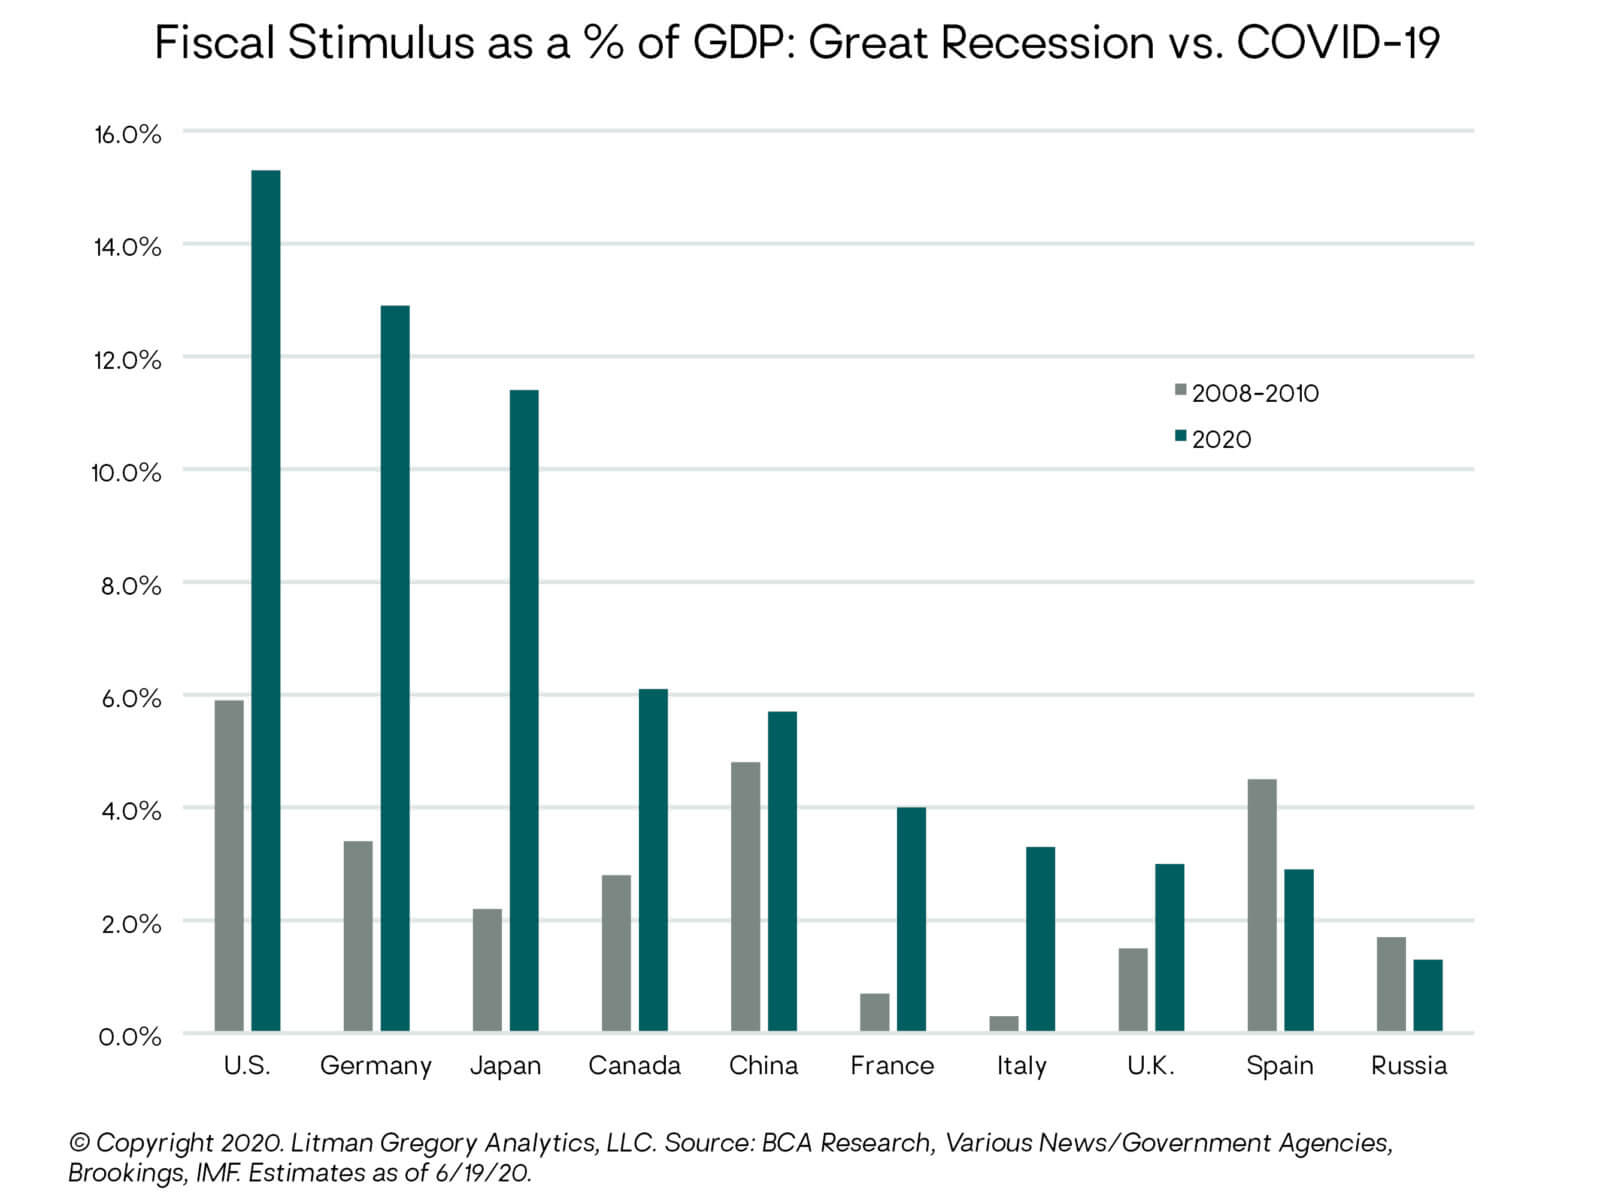 Fiscal Stimulus as Percent of GDP